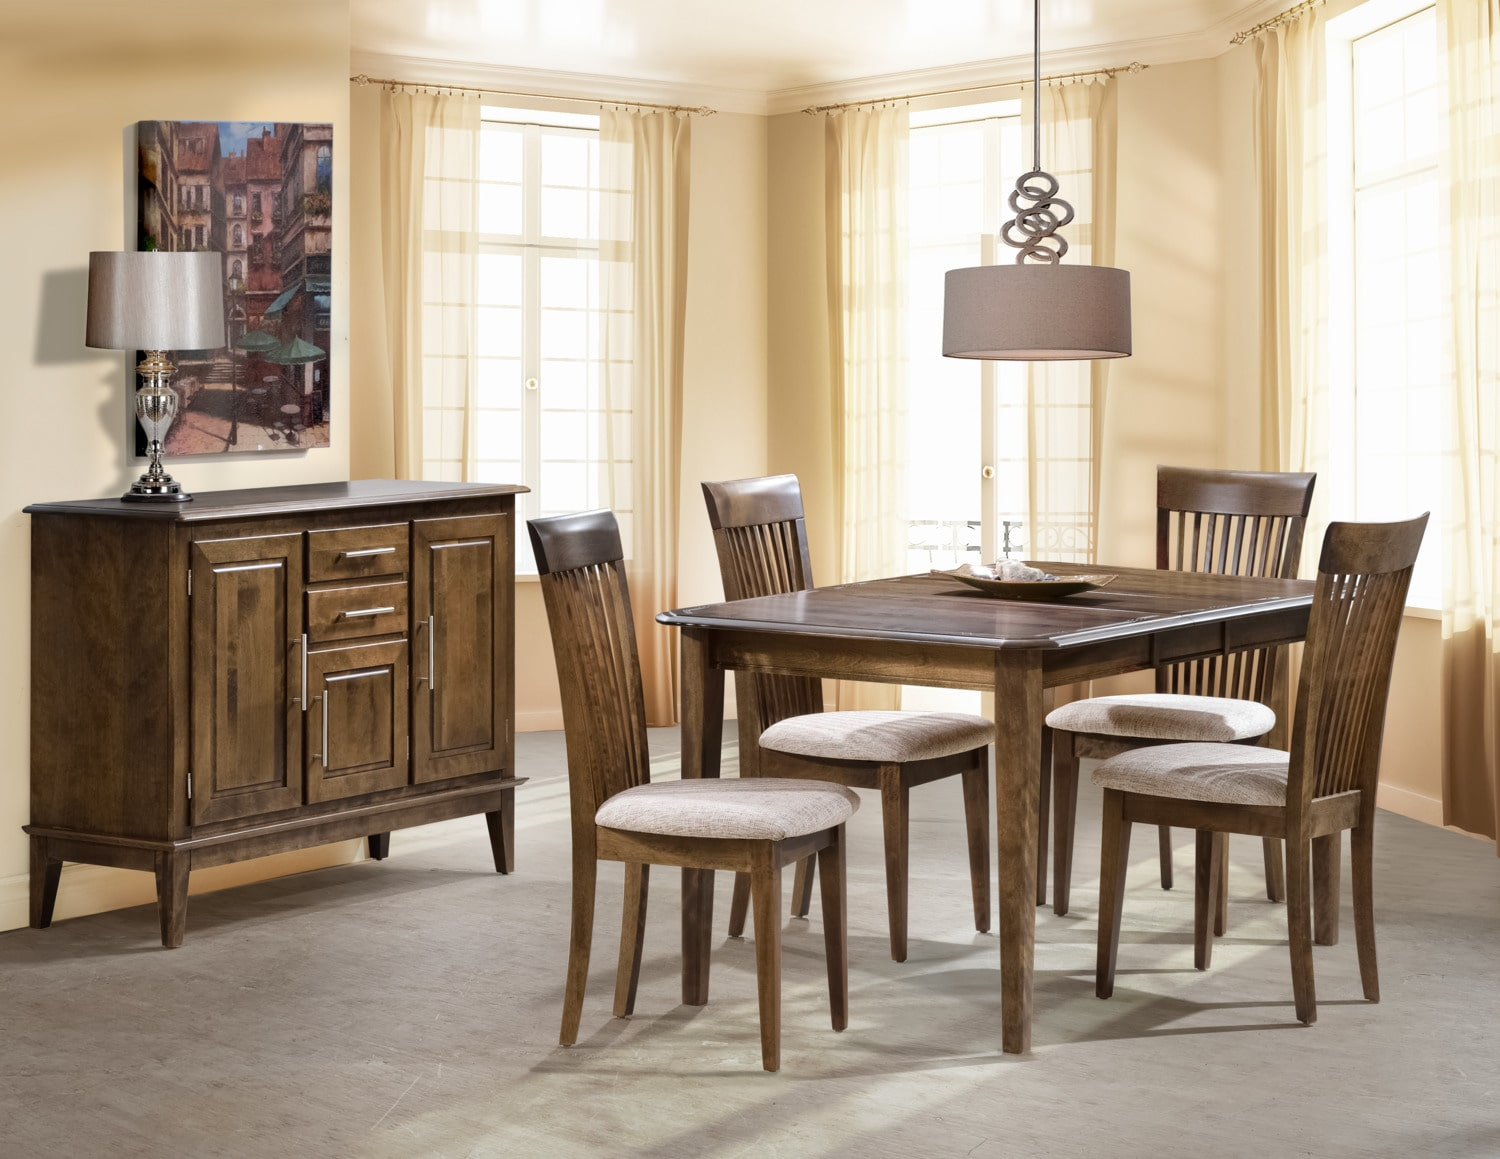 Granby 5-Piece Dining Room Set - Fossil